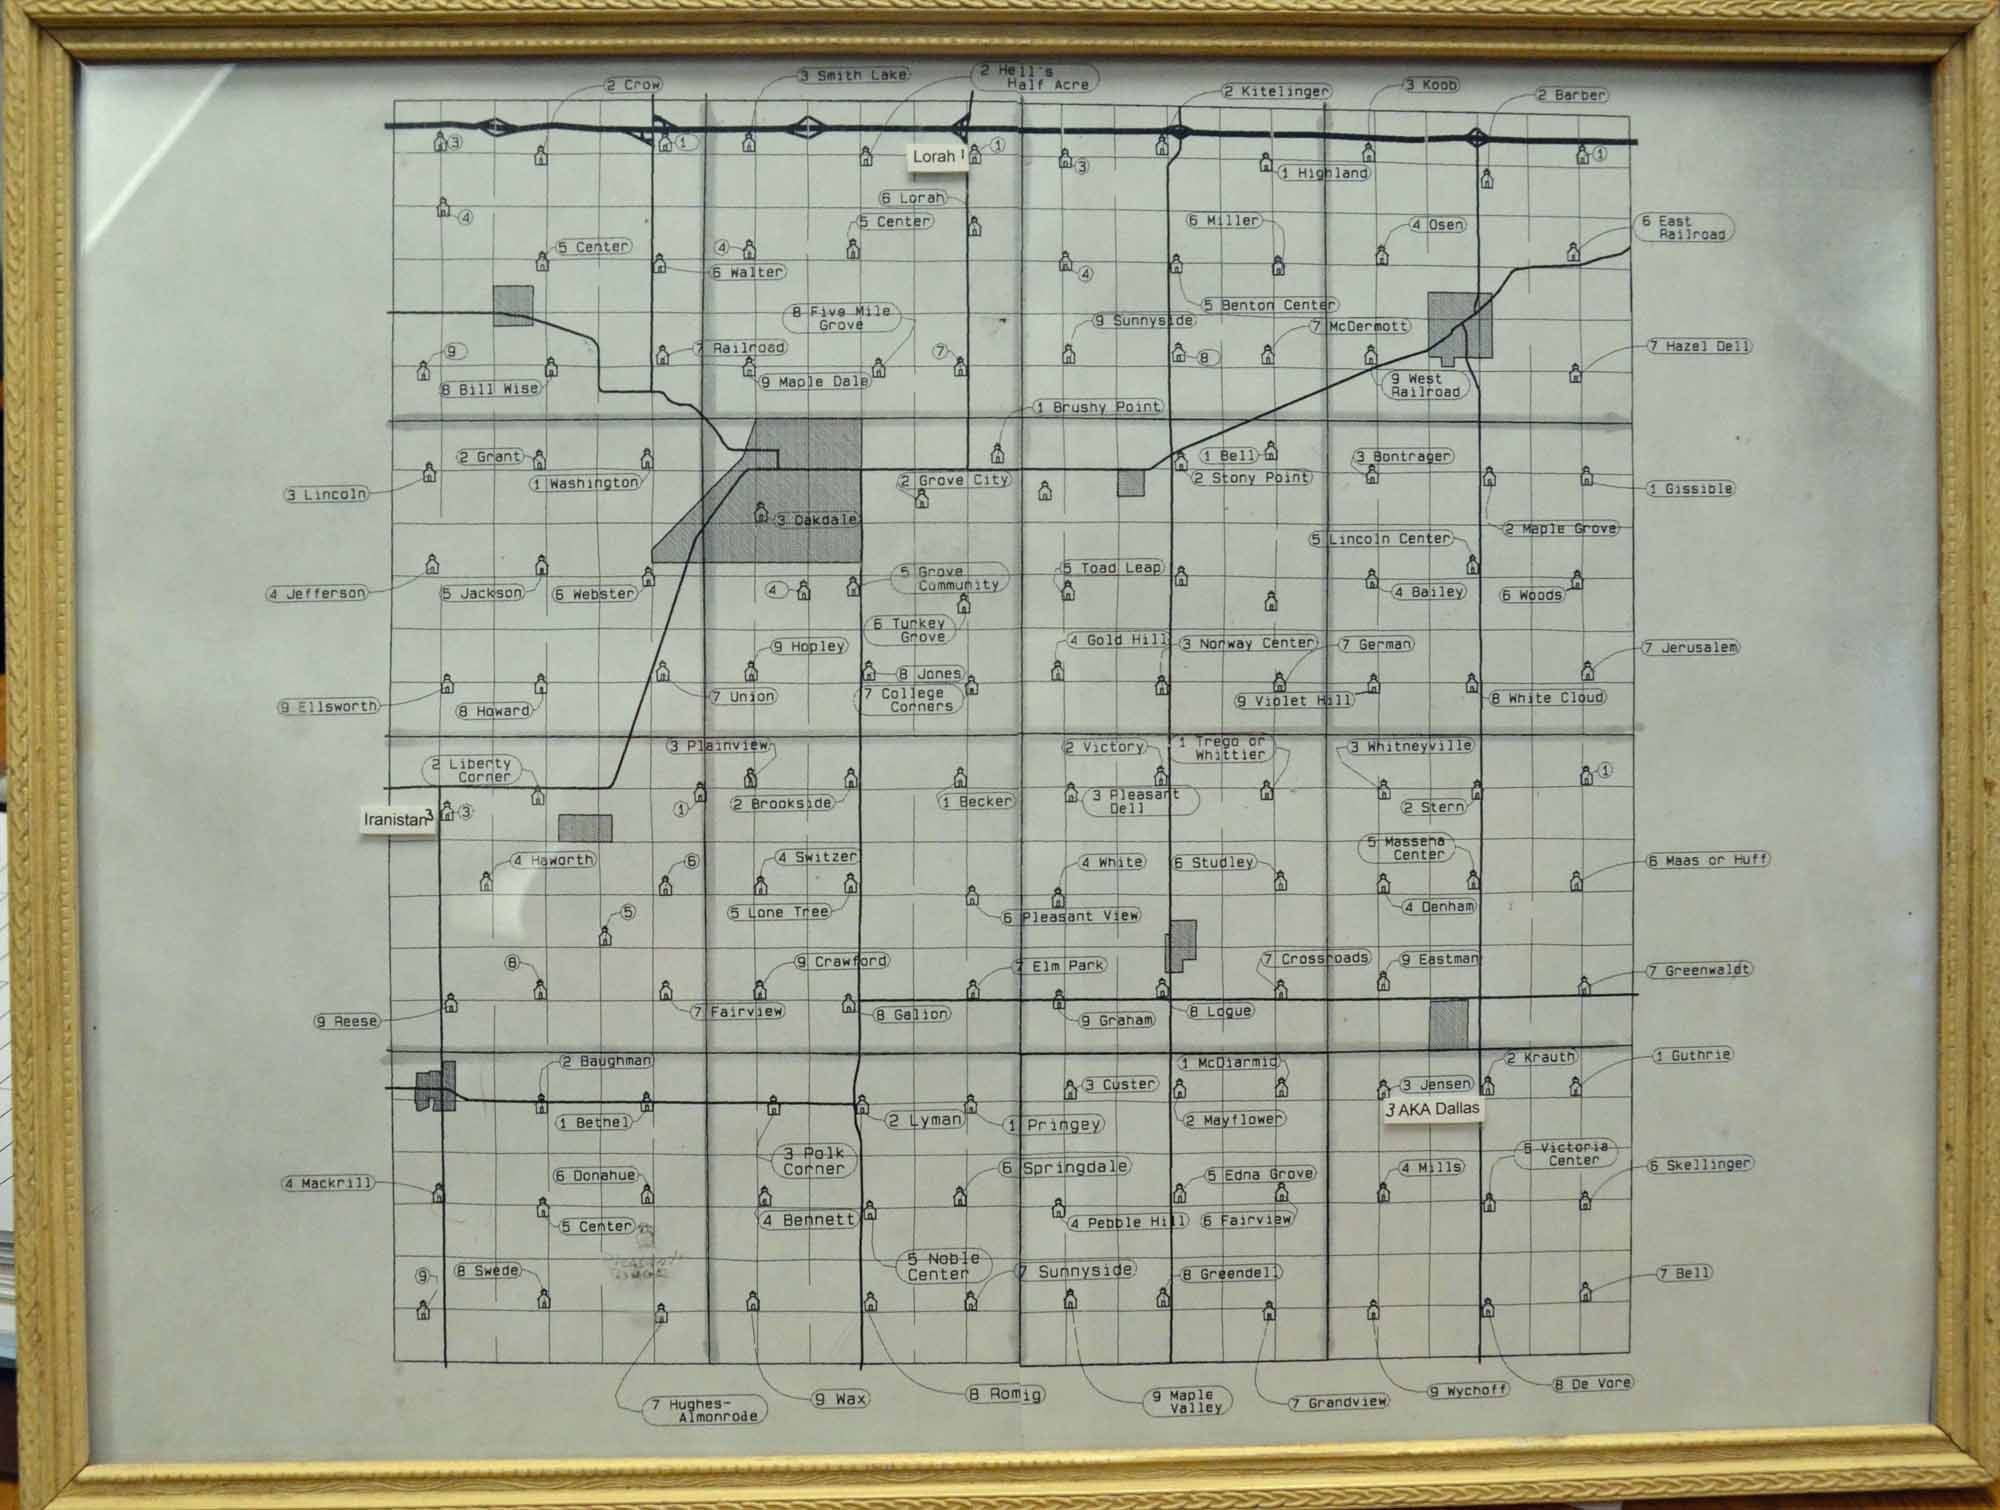 Cass County Iowa Schools - 1902 Cass County Schools Map